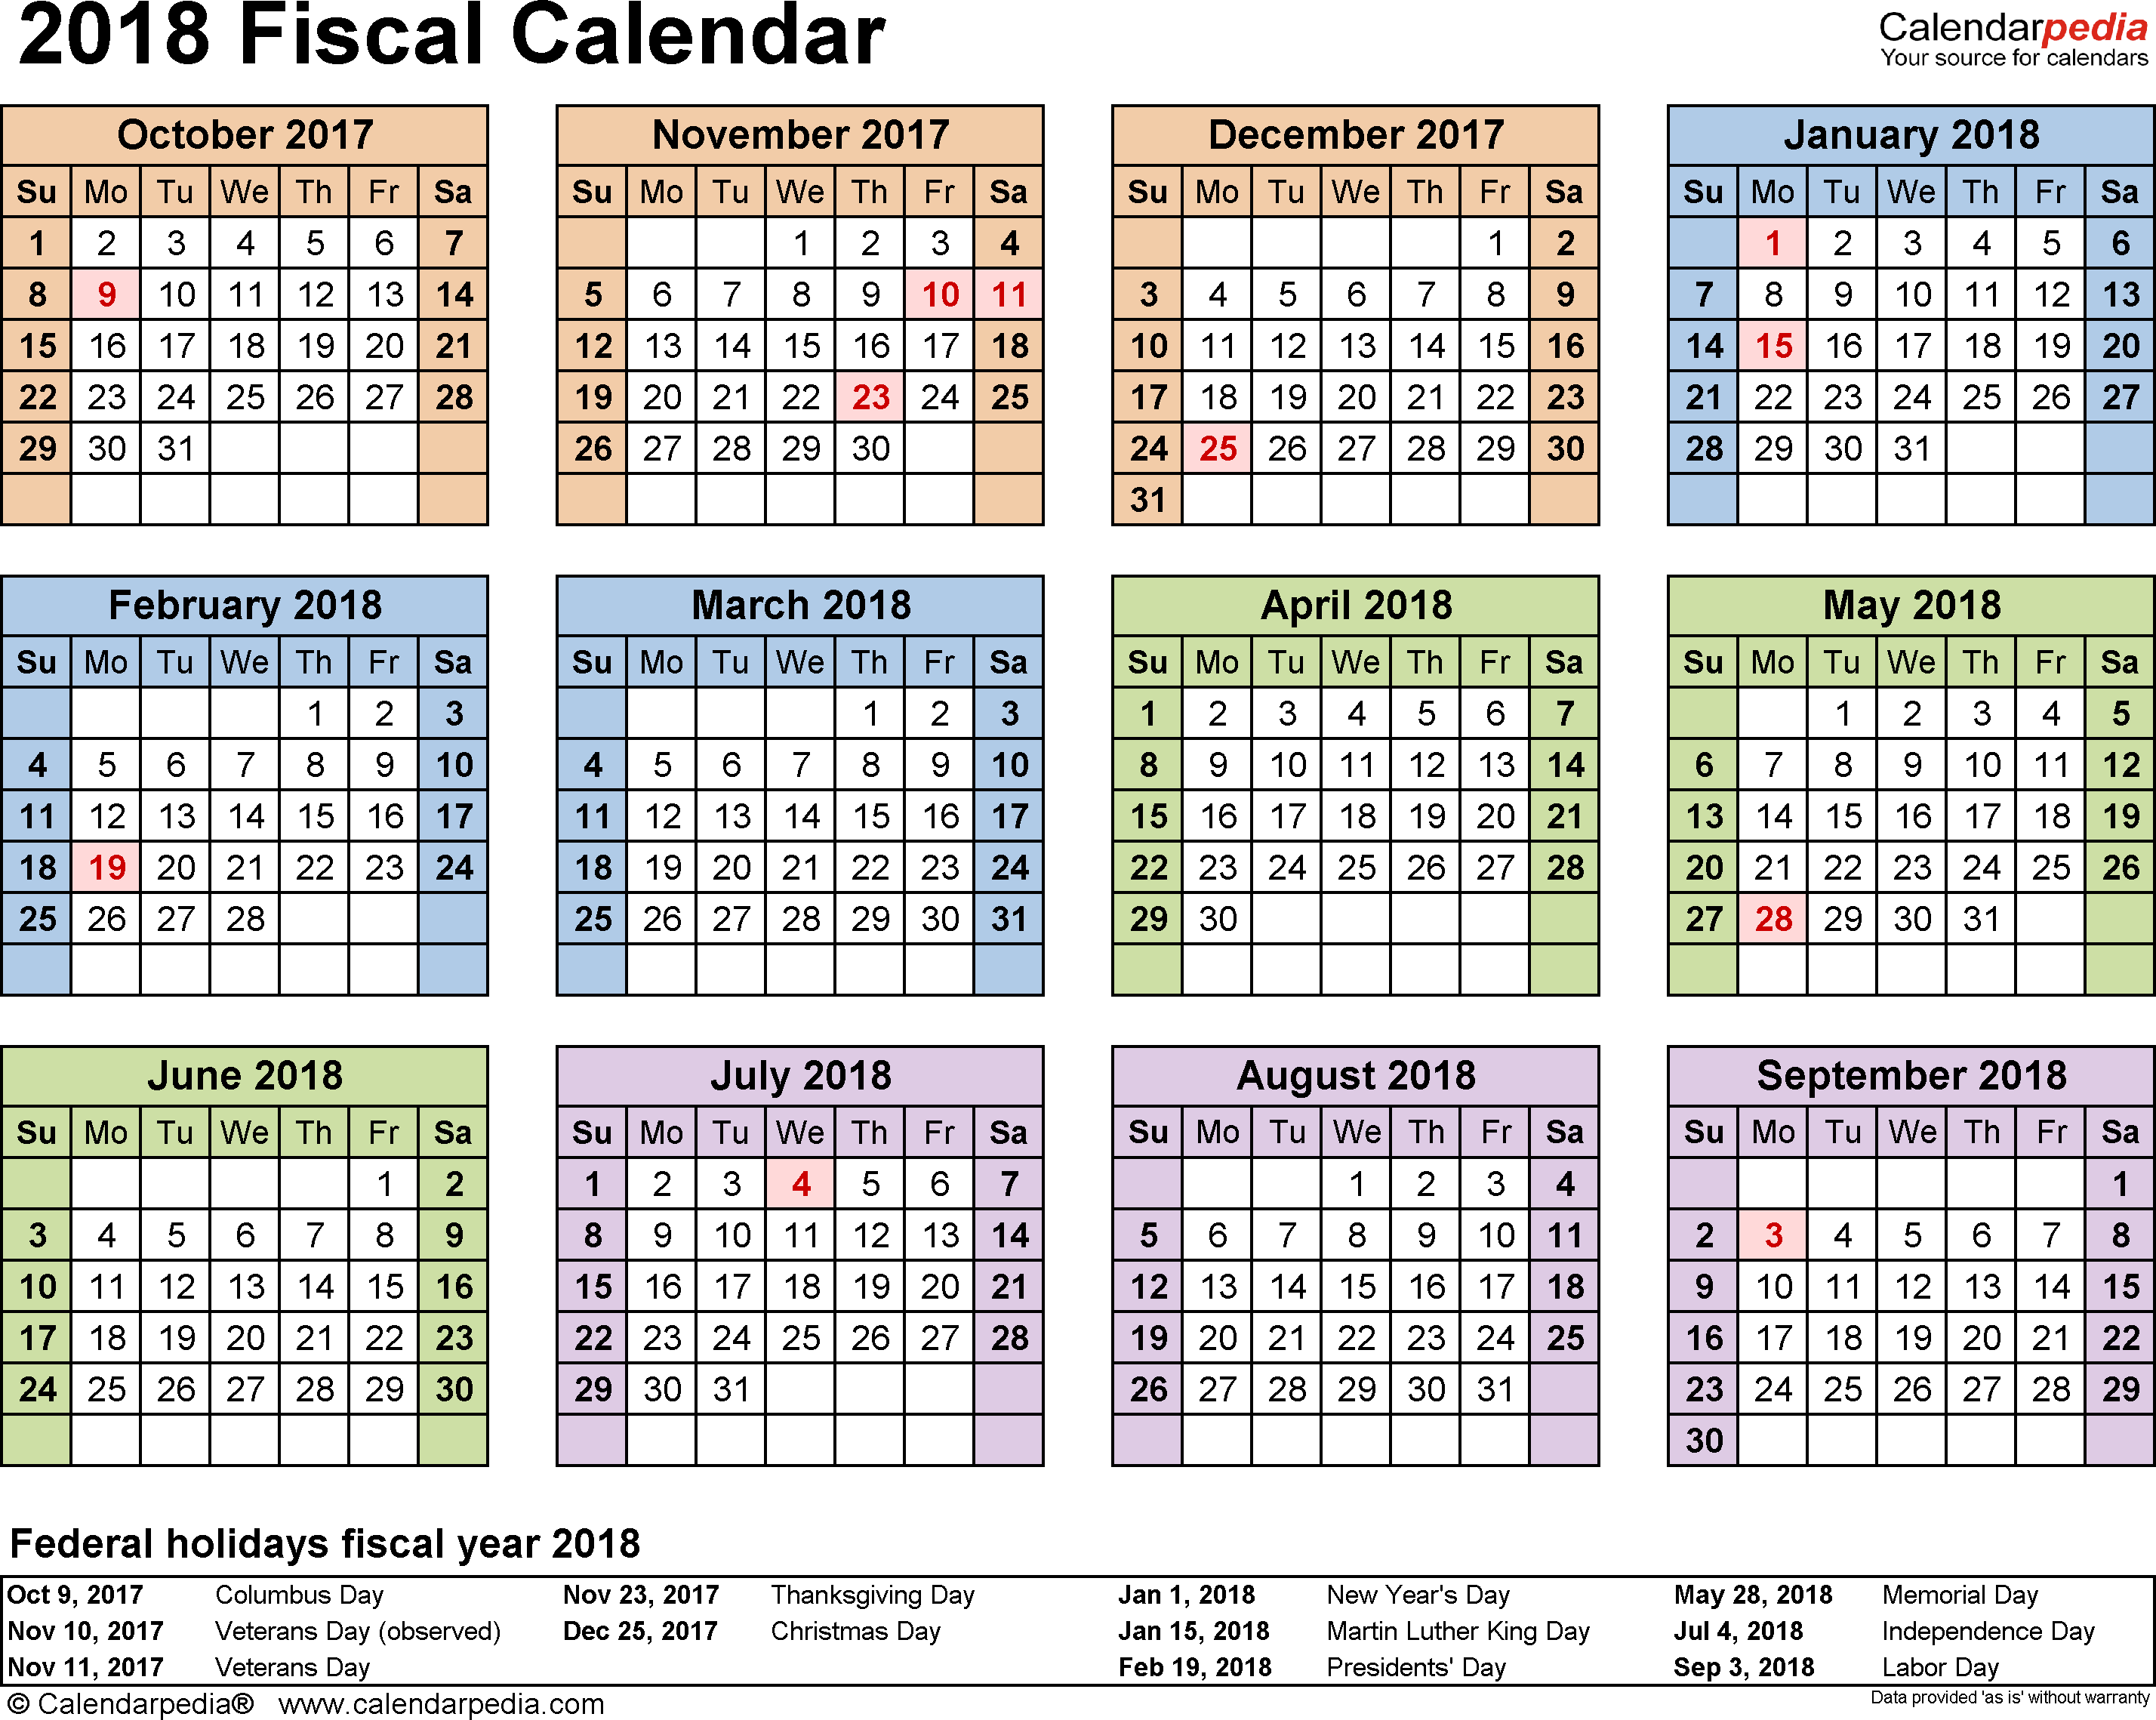 Template 4: Fiscal year calendar 2018 for PDF, landscape orientation, year at a glance, 1 page